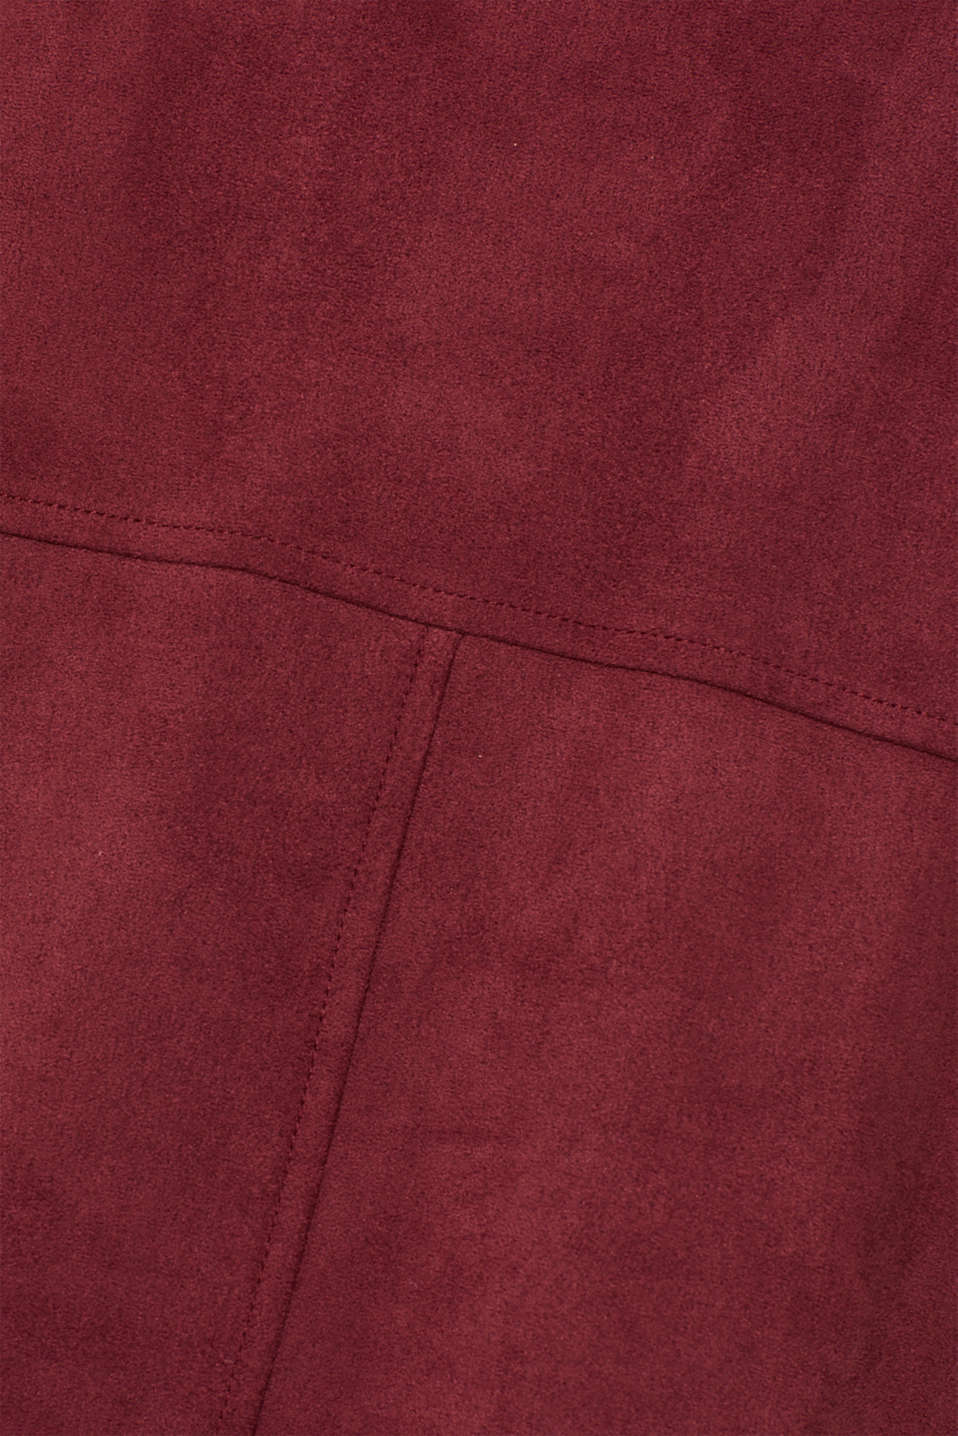 Dresses woven, BORDEAUX RED, detail image number 4